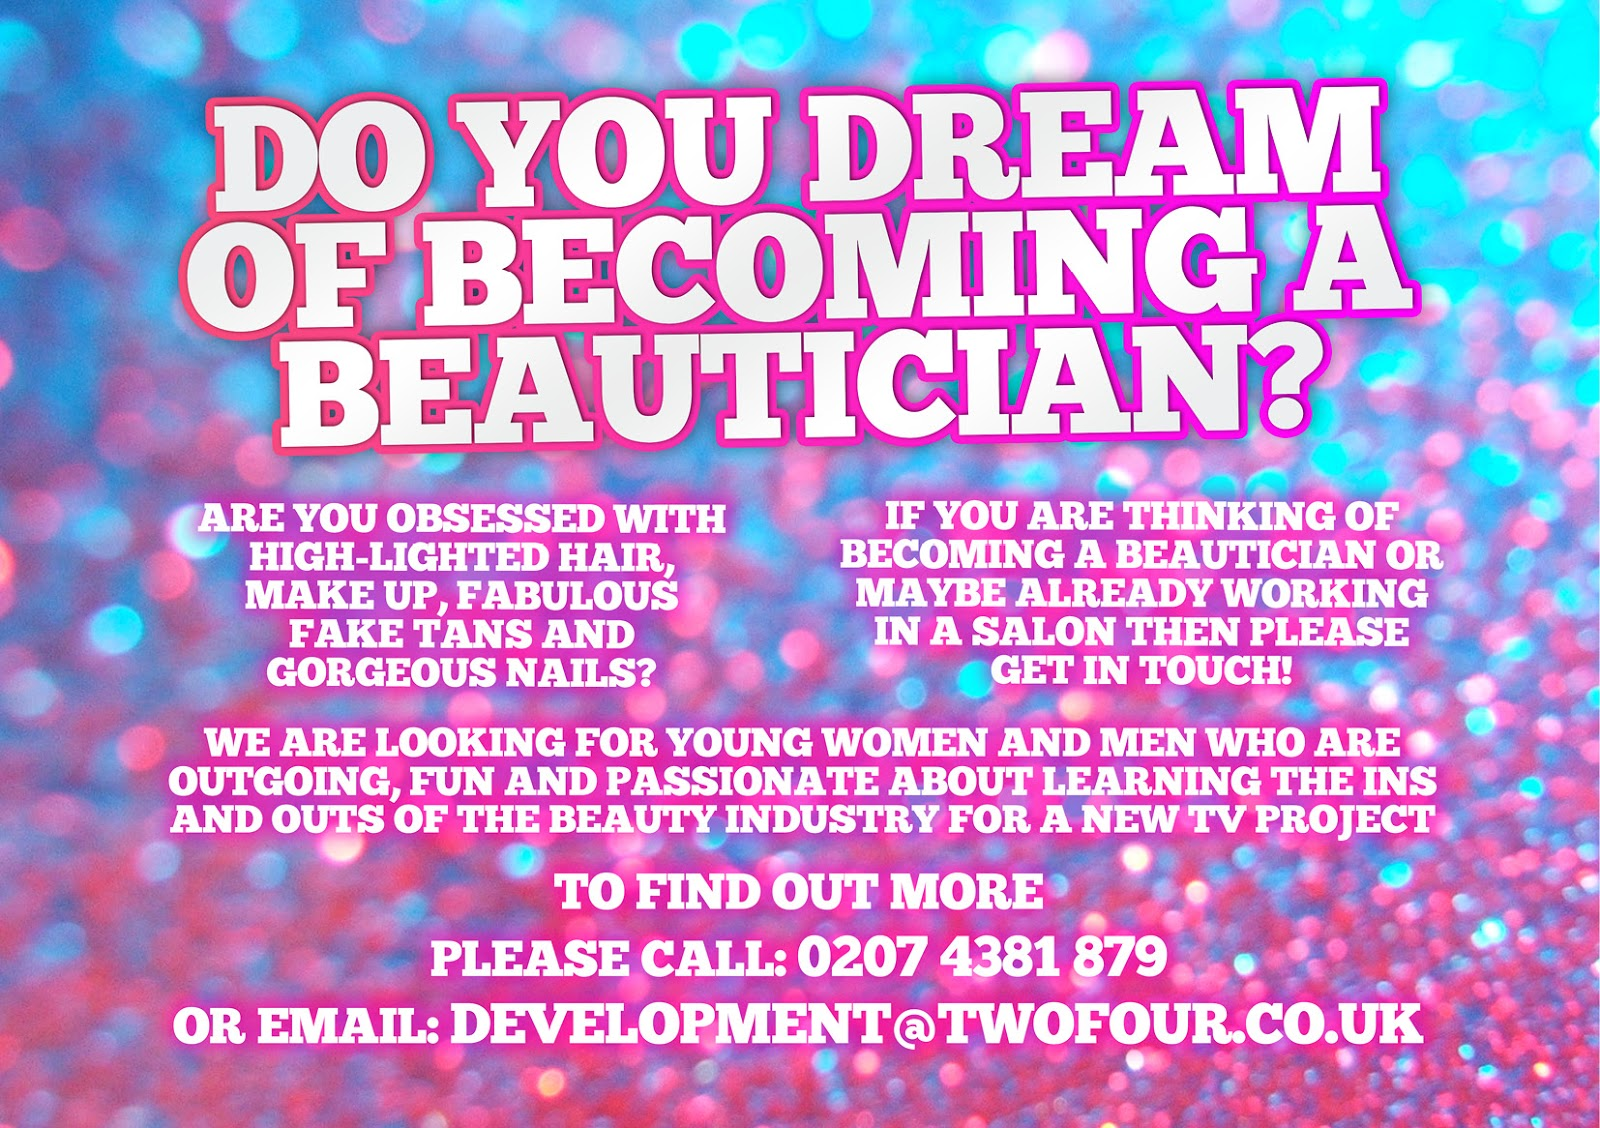 Calling All Beauty Pros - Wanna Be On TV?